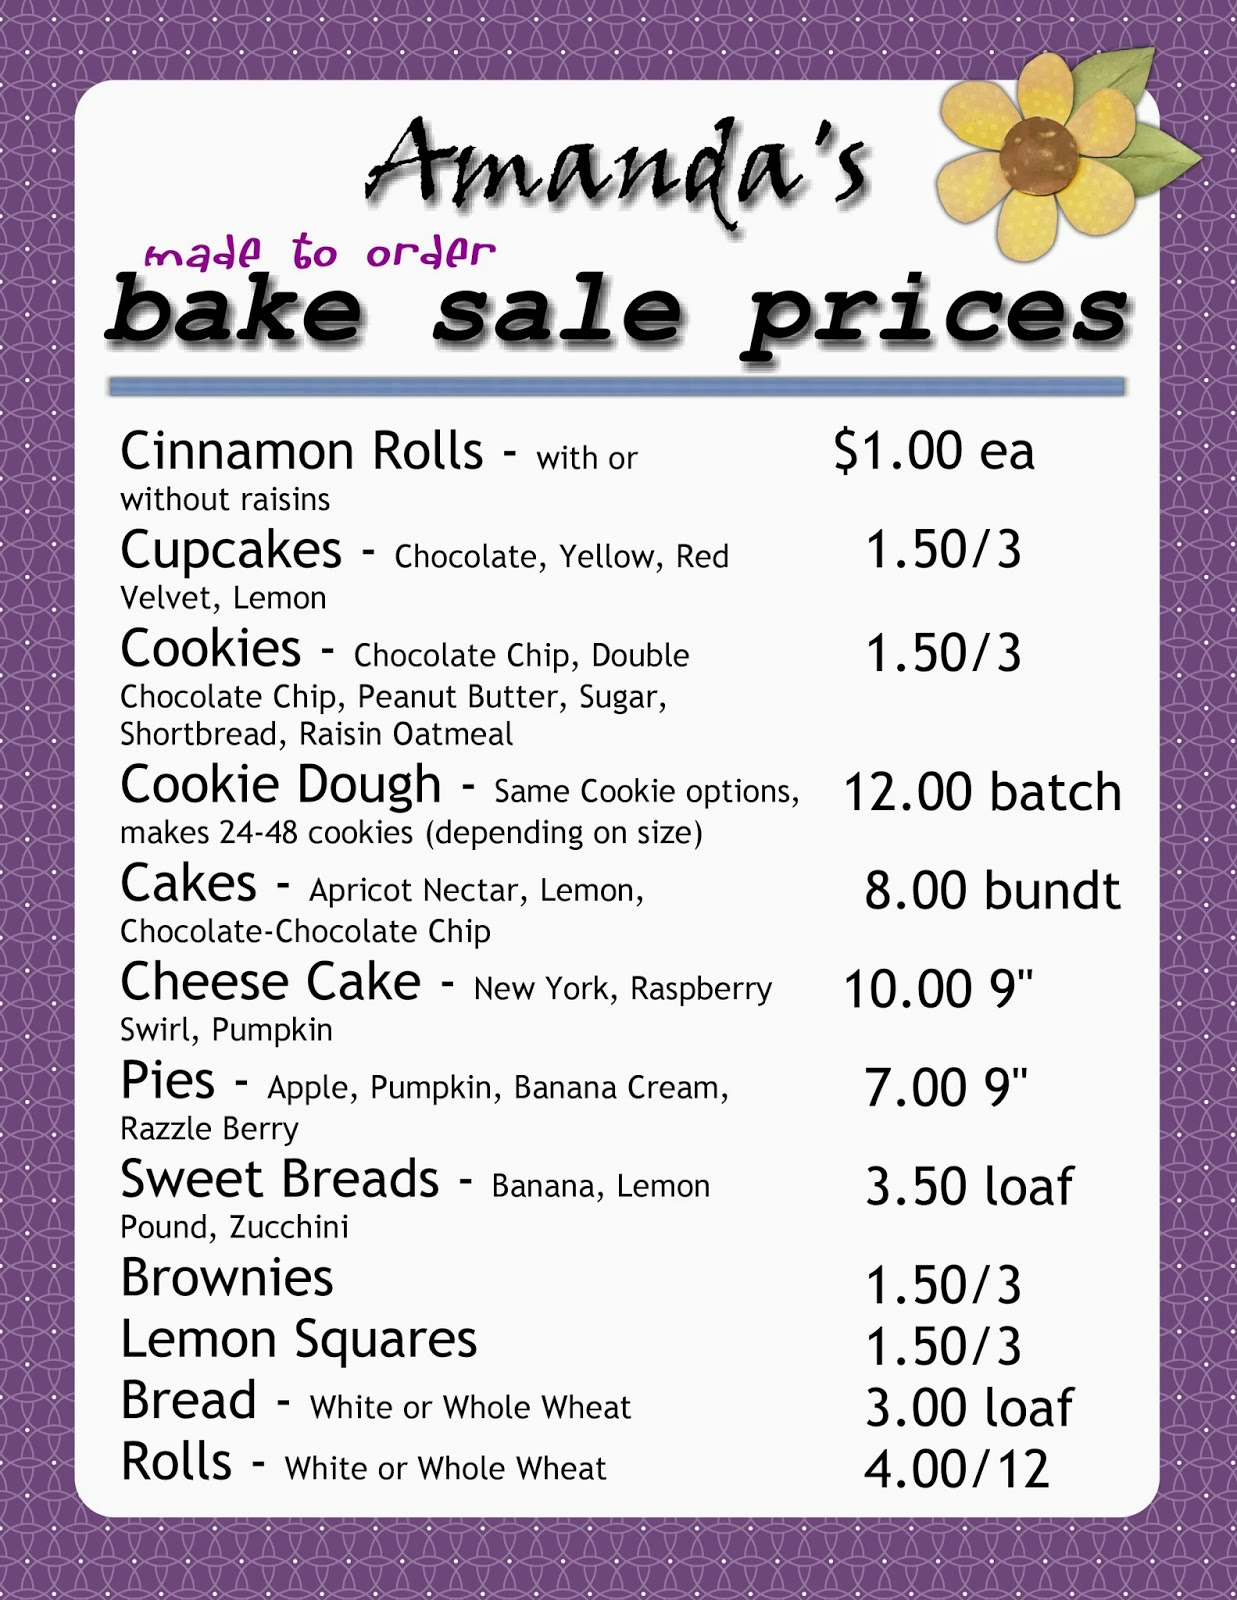 Amanda's Bake Sale Bake Sale Pricing. Take Out Menu Template. Free Construction Contract Template. Haunted House Flyer. Design Your Own Invitations Online. Week Planner Template Word. Calendar Template For Word. Funeral Pamphlet Template Free. Meal Plan Template Excel